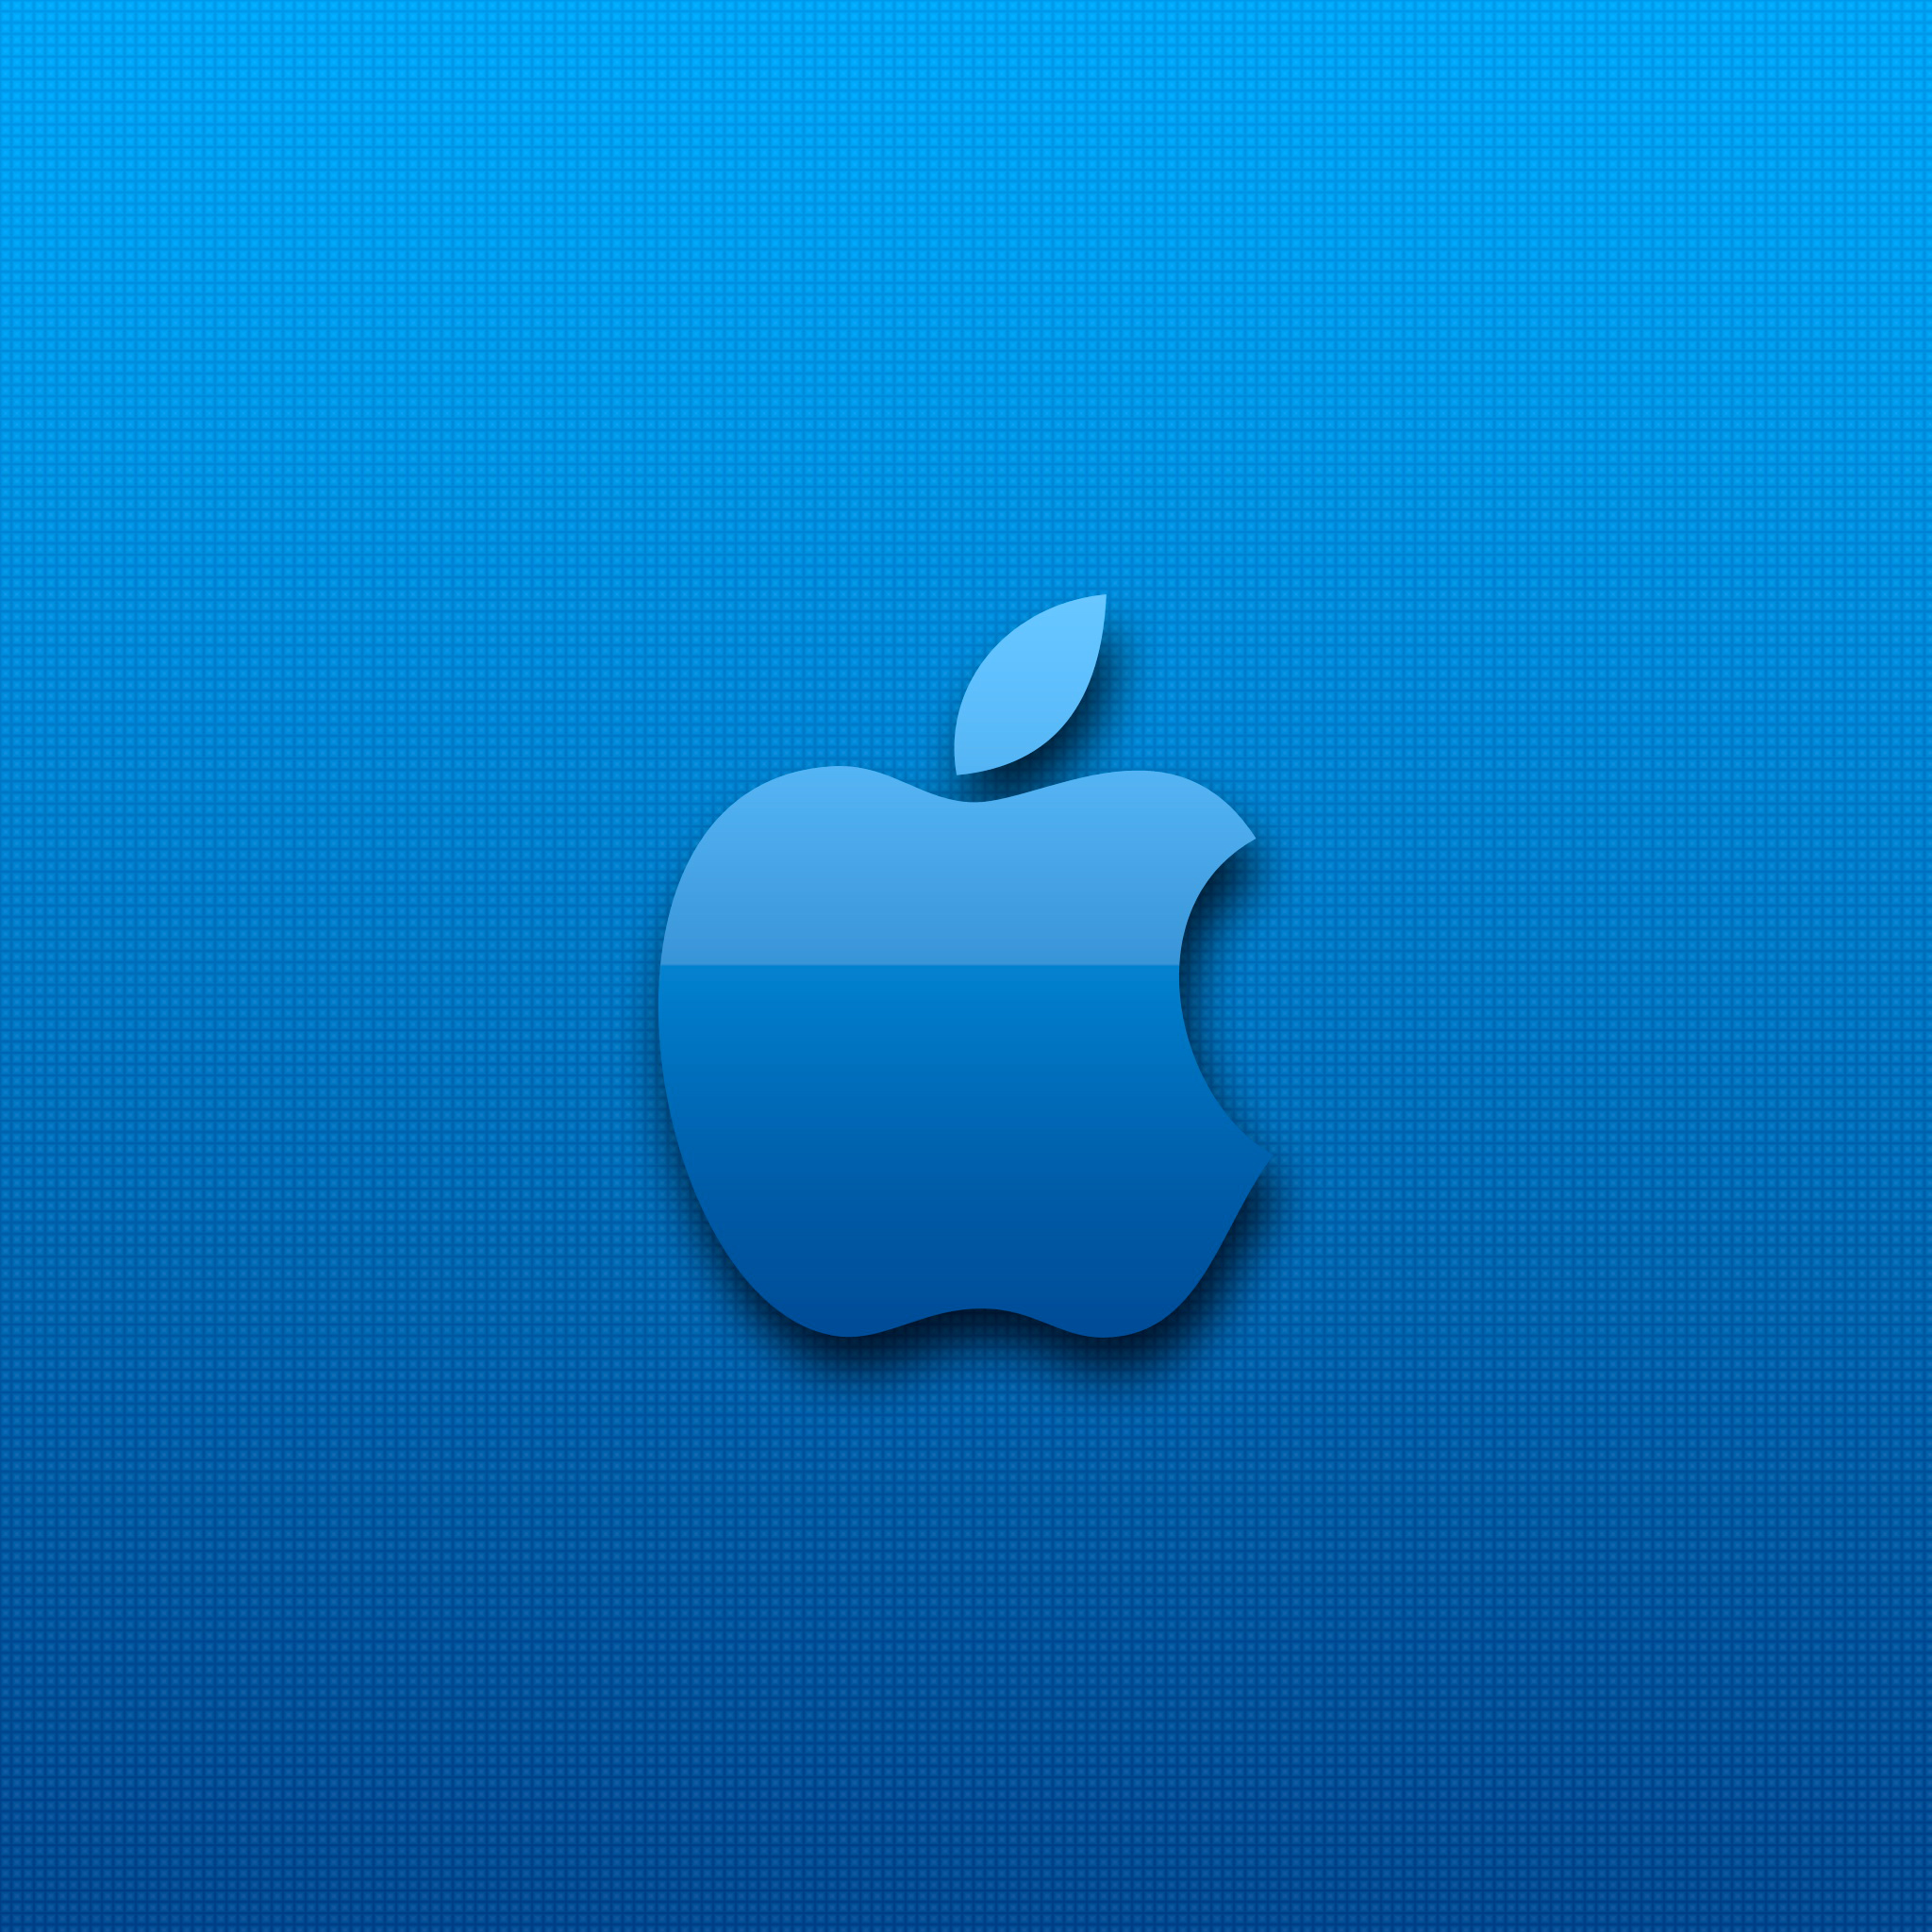 Blue Apple 3Wallpapers IPad Retina